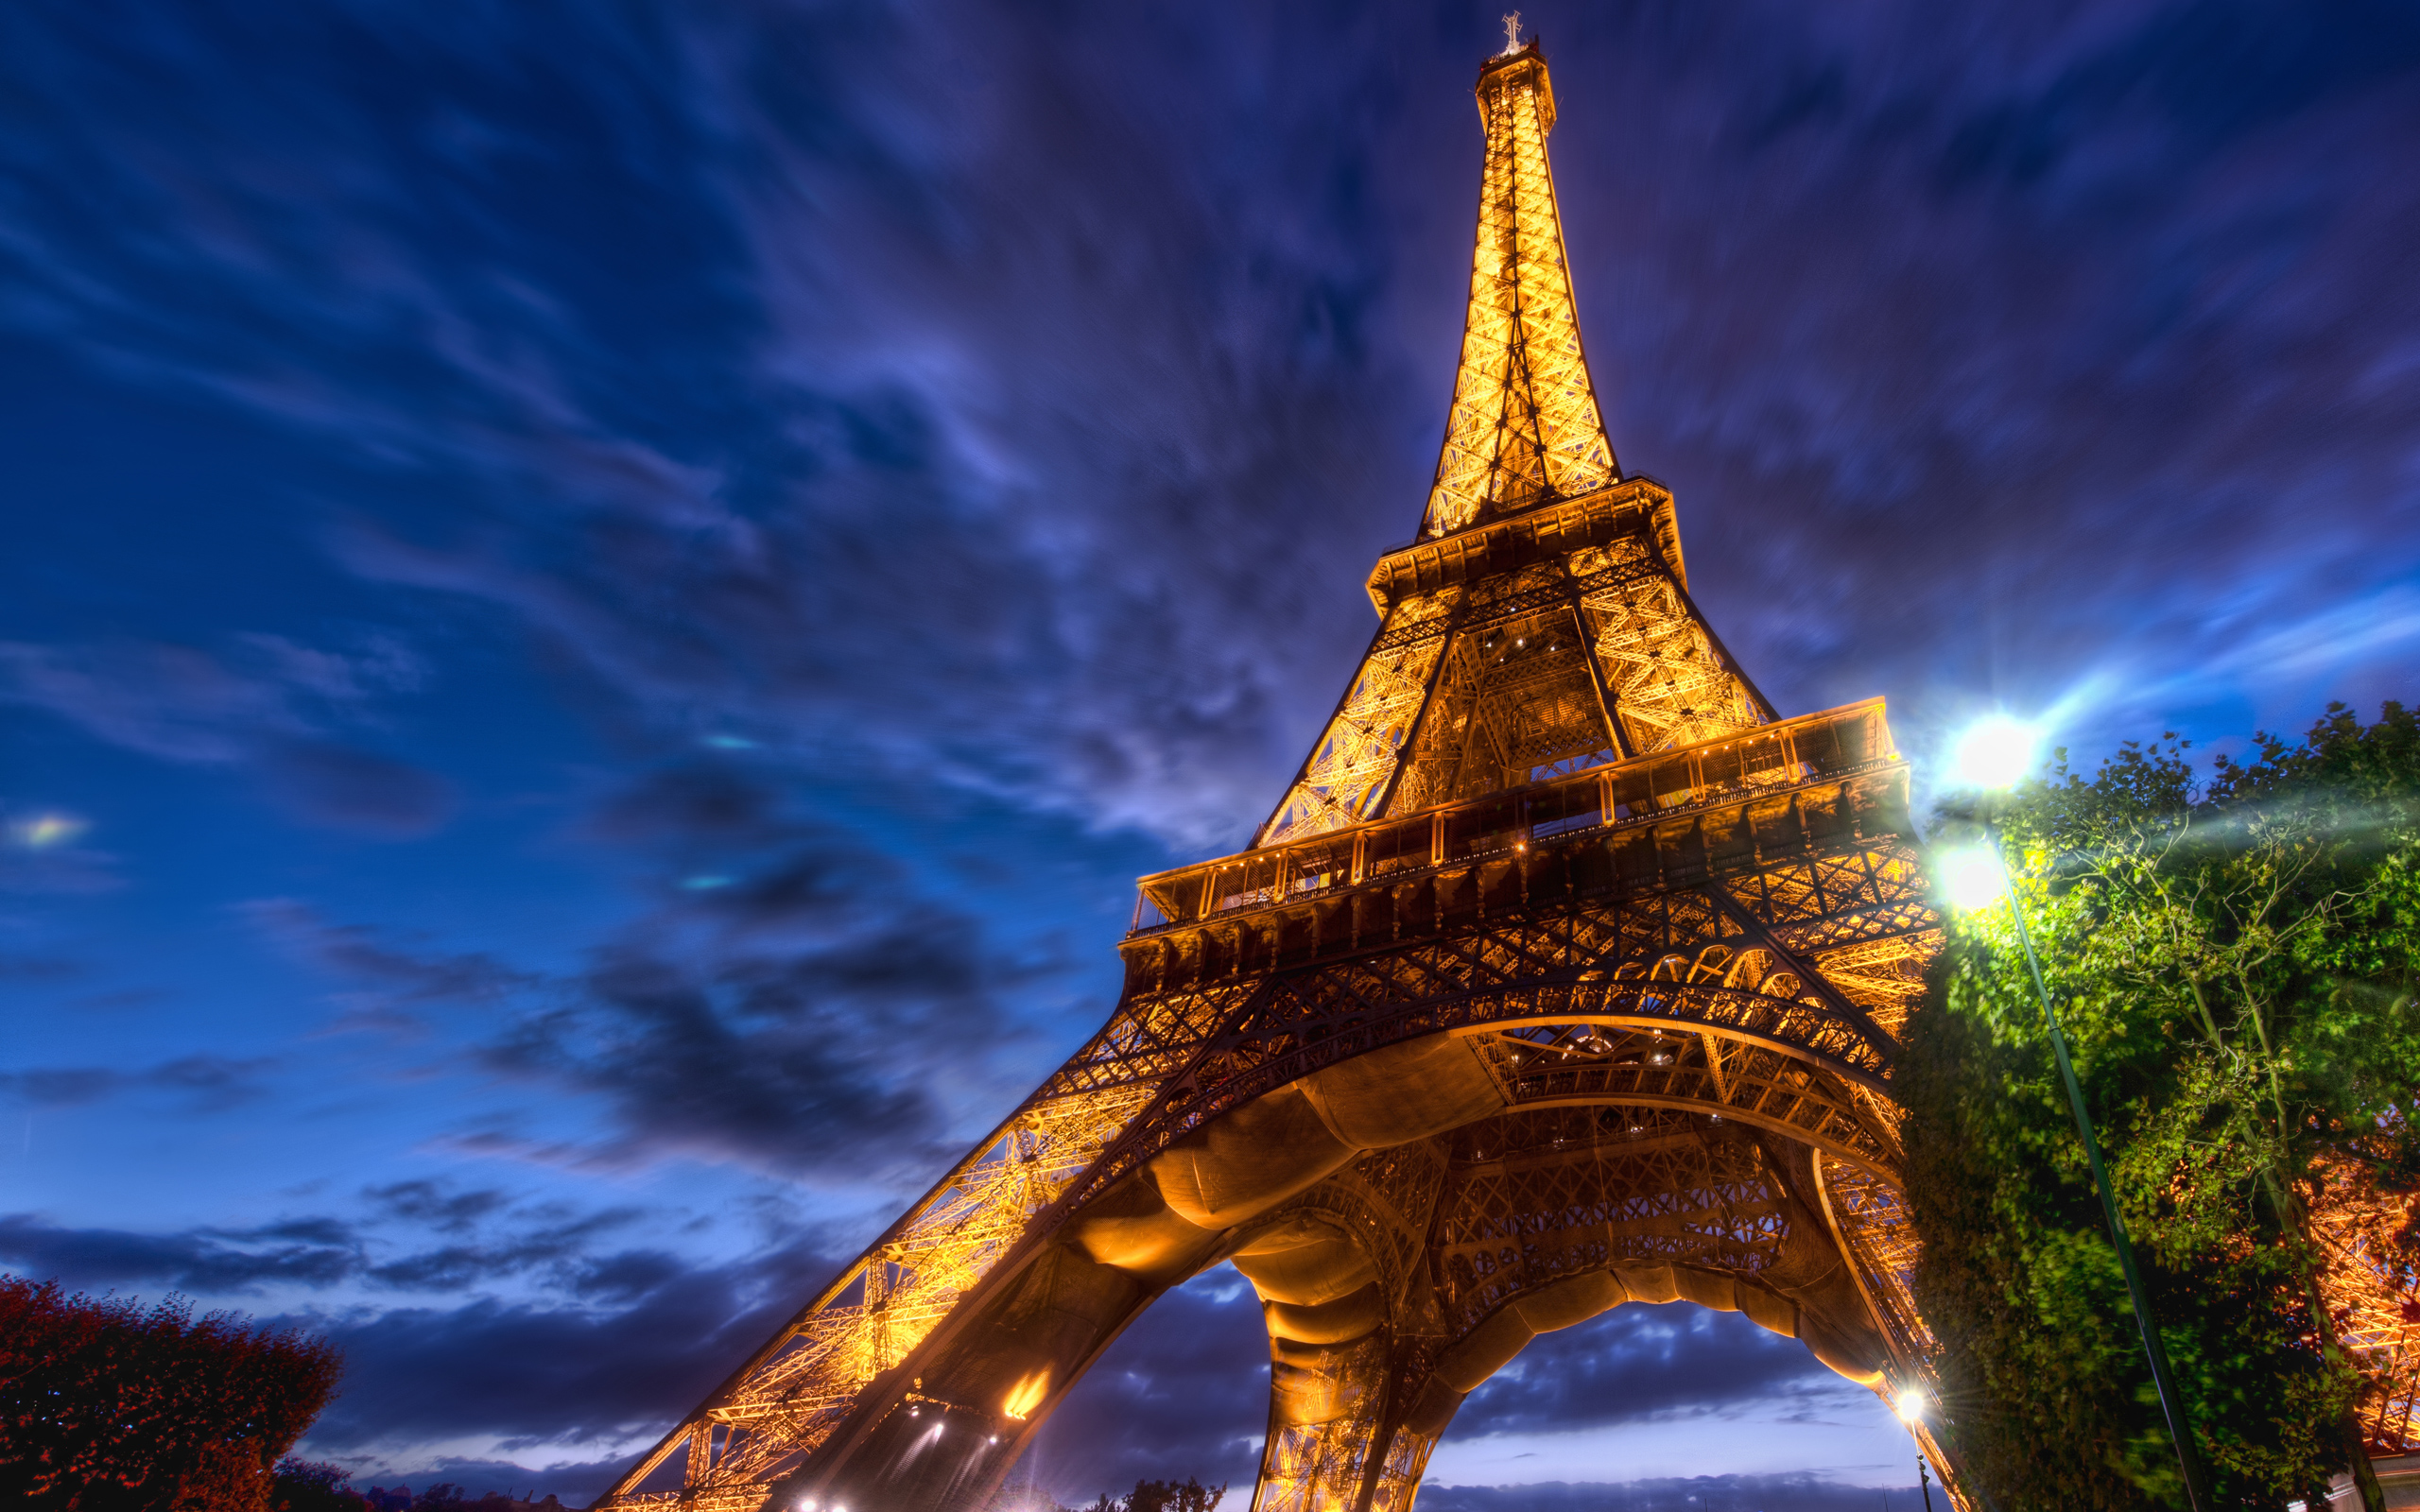 Eiffel Tower HDR Wallpaper